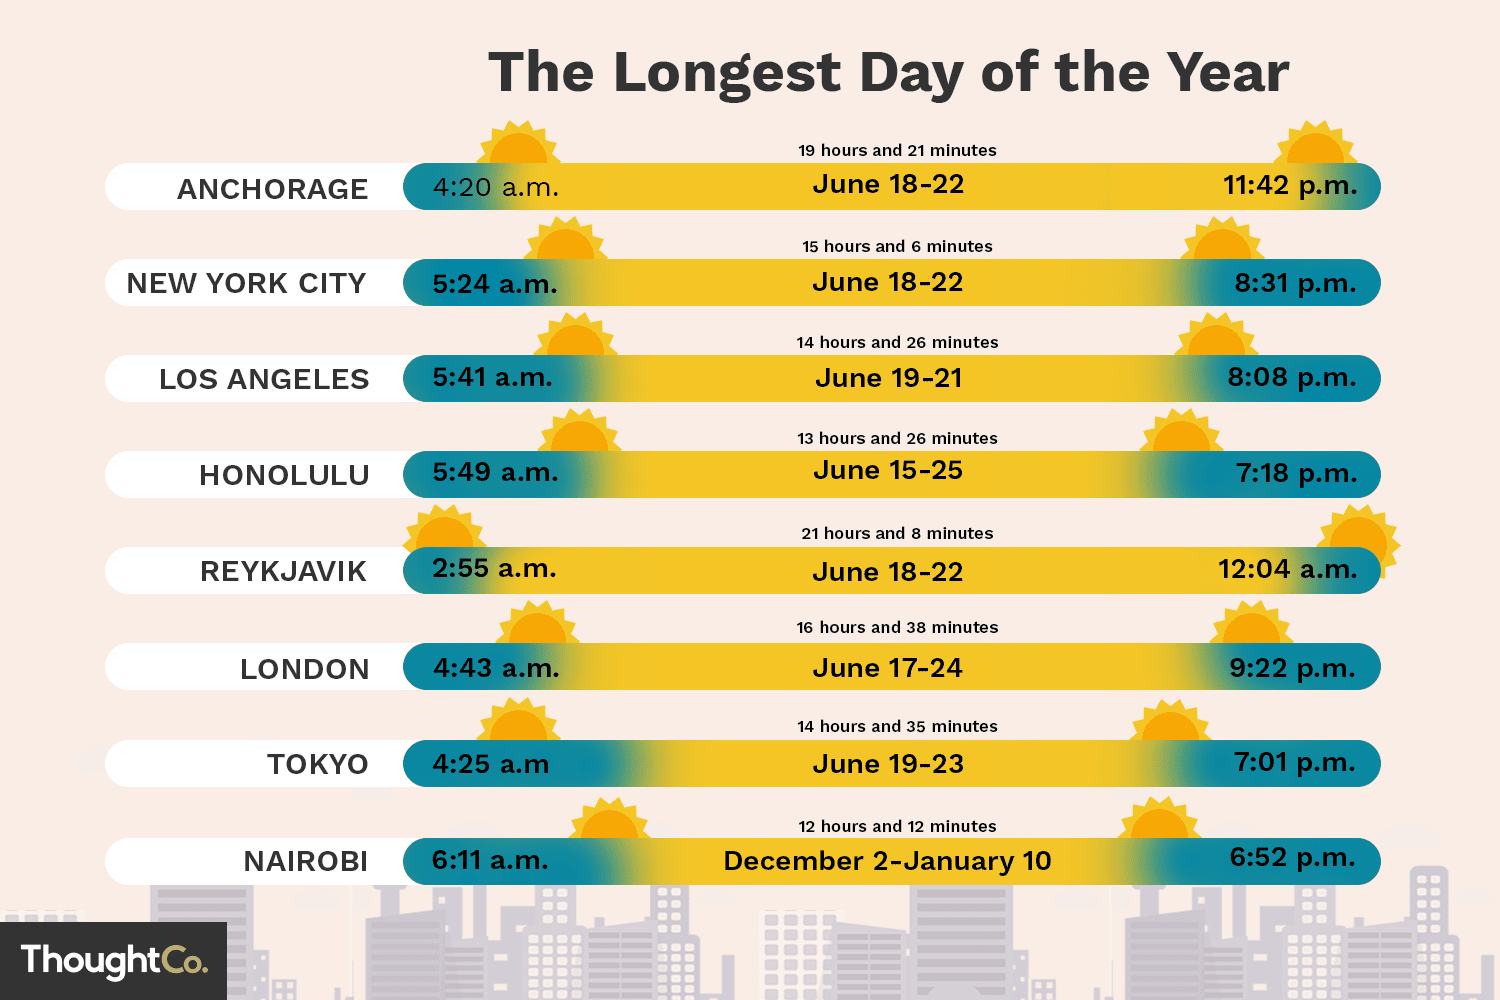 Longest Day of the Year in Different Cities